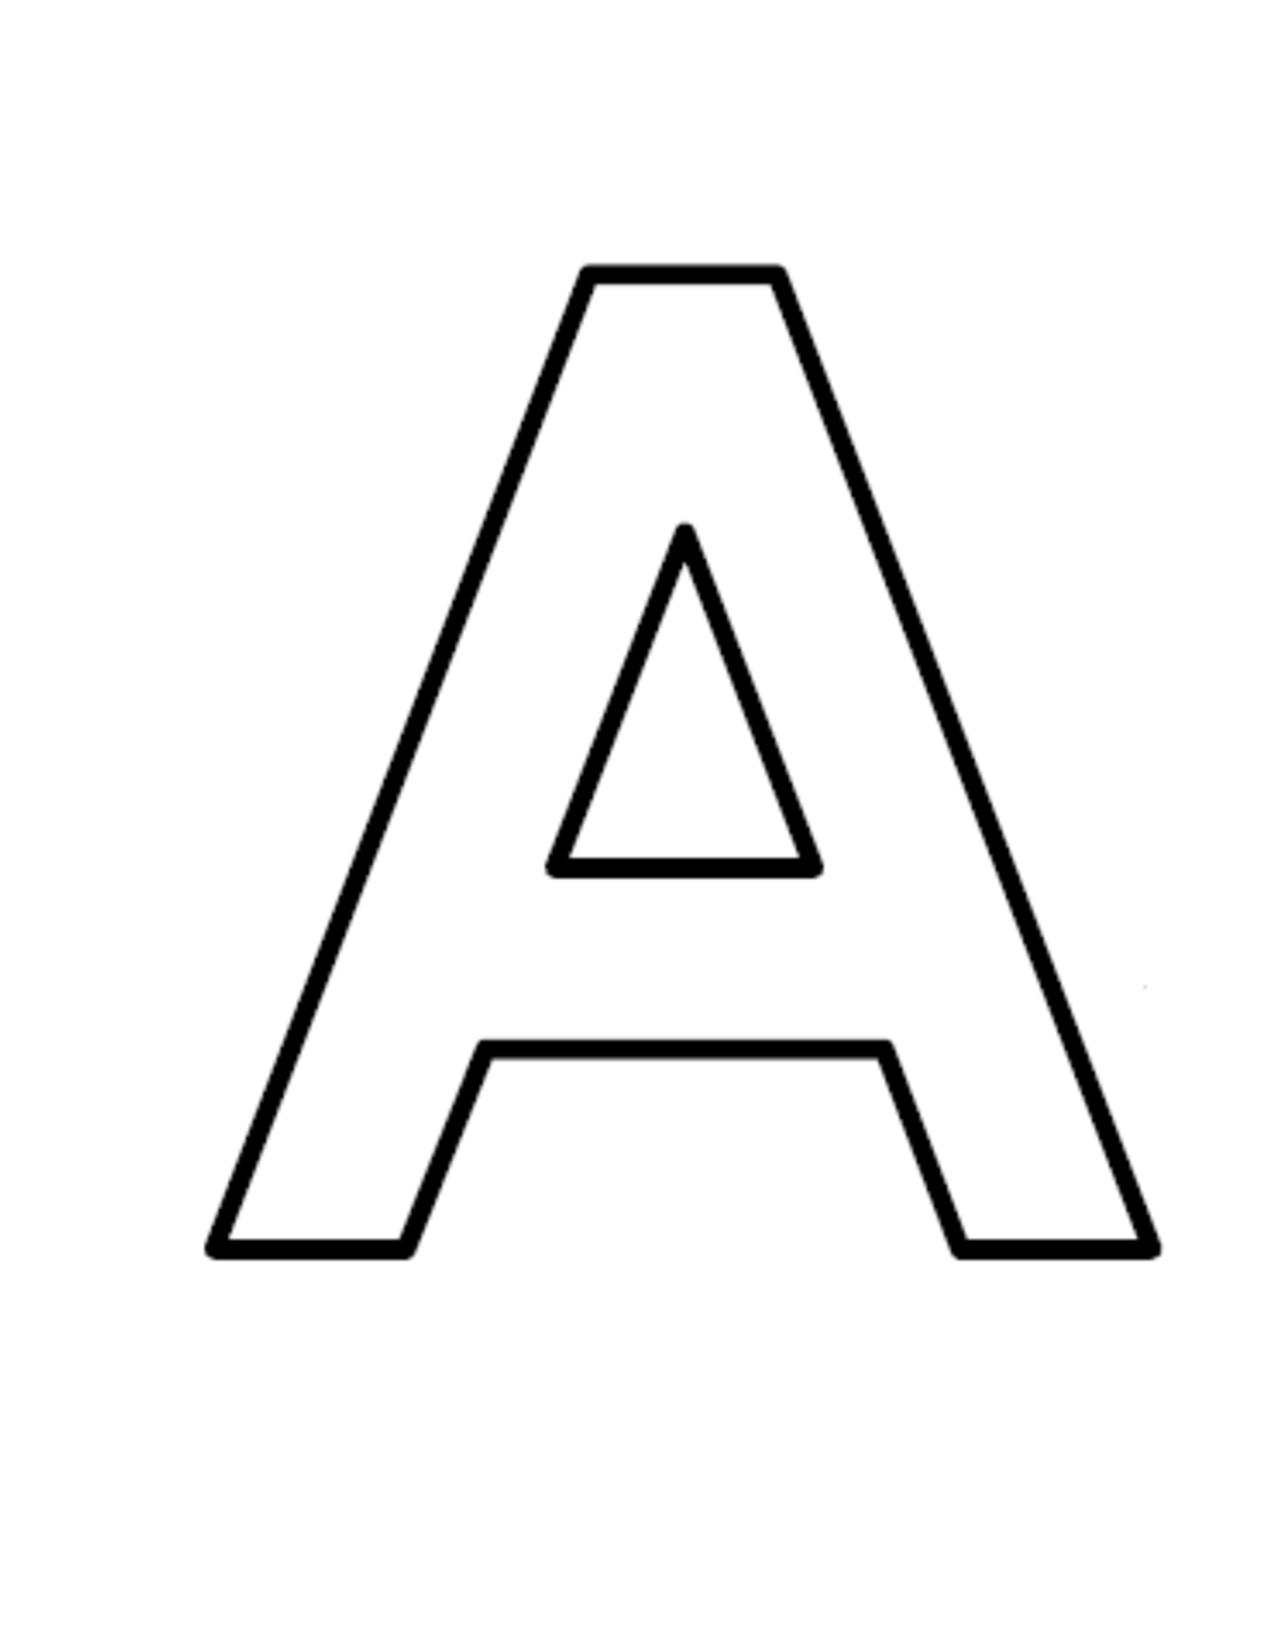 Alphabet Printable Images Gallery Category Page 12